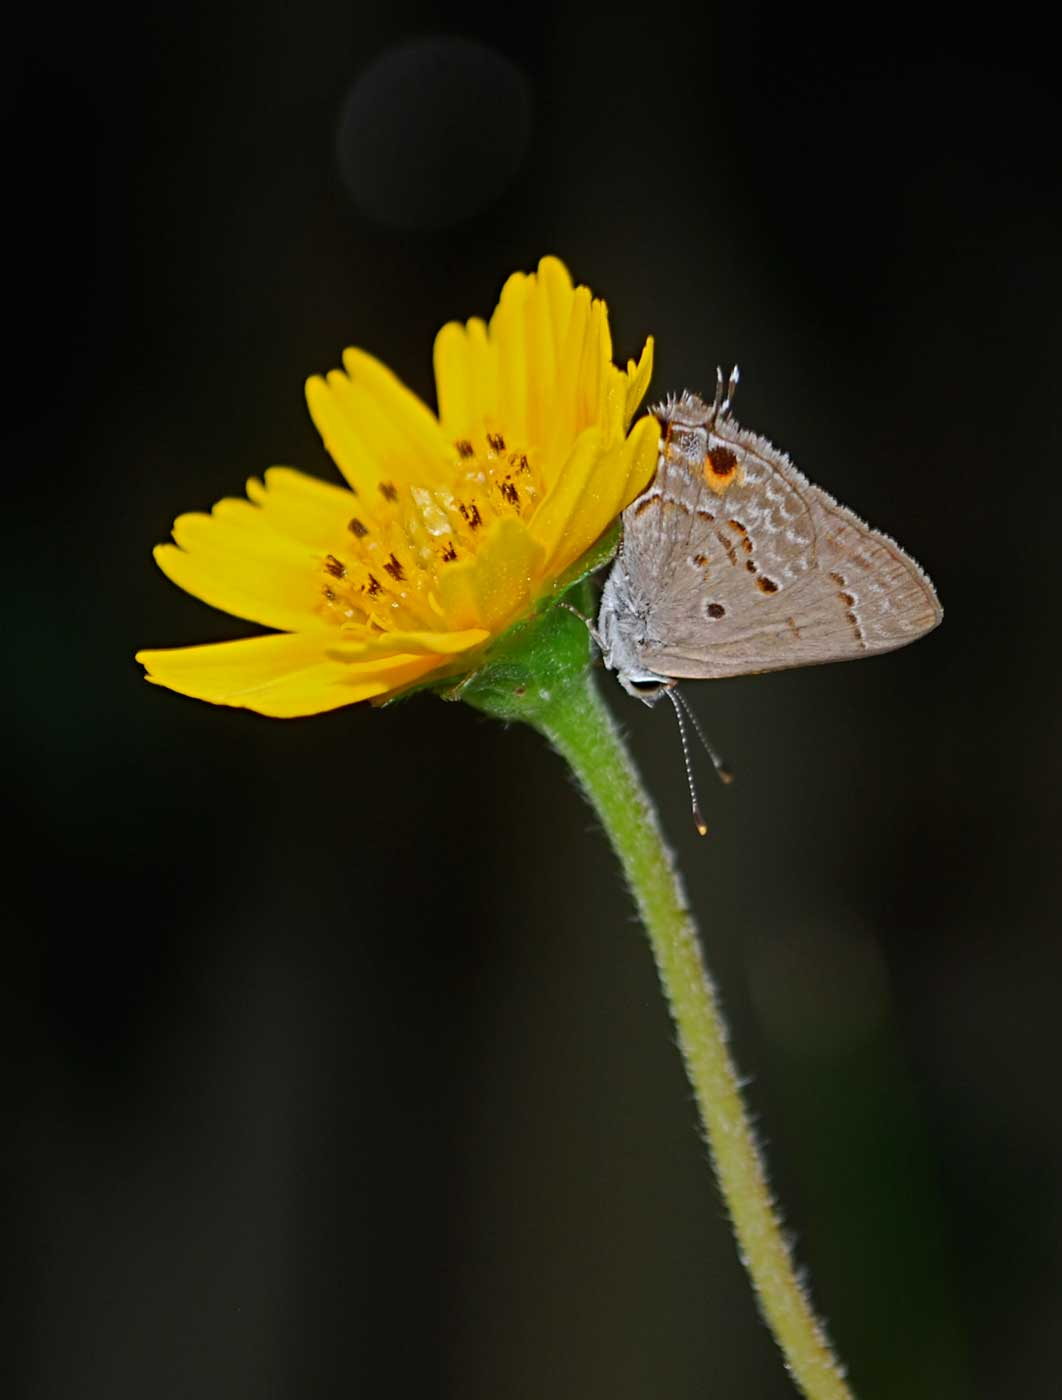 mallow-scrub-hairstreak-vertical